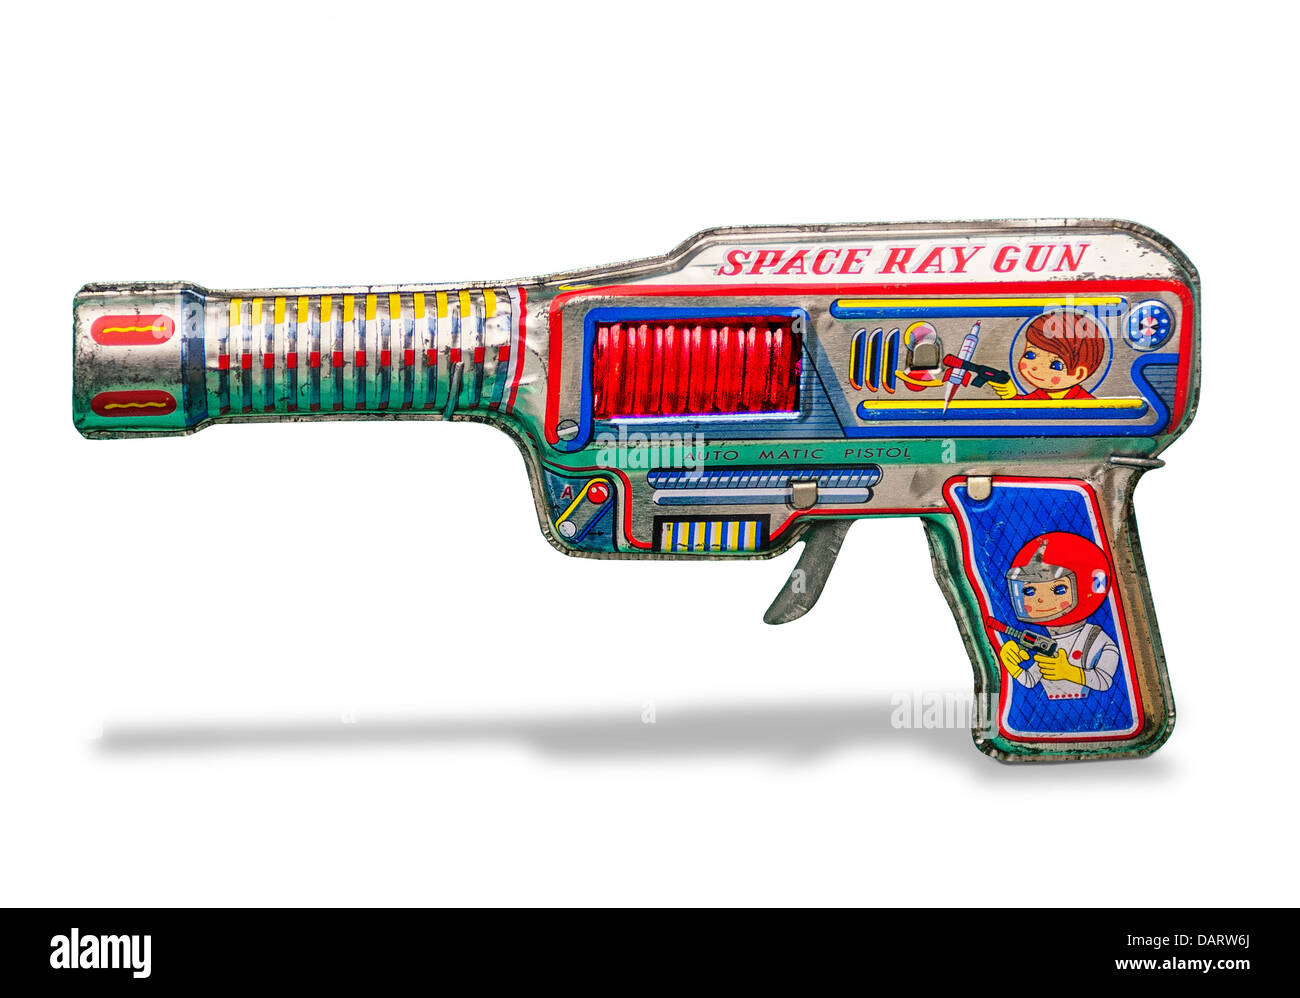 Space Ray Gun Stock Photos & Space Ray Gun Stock Images - Alamy